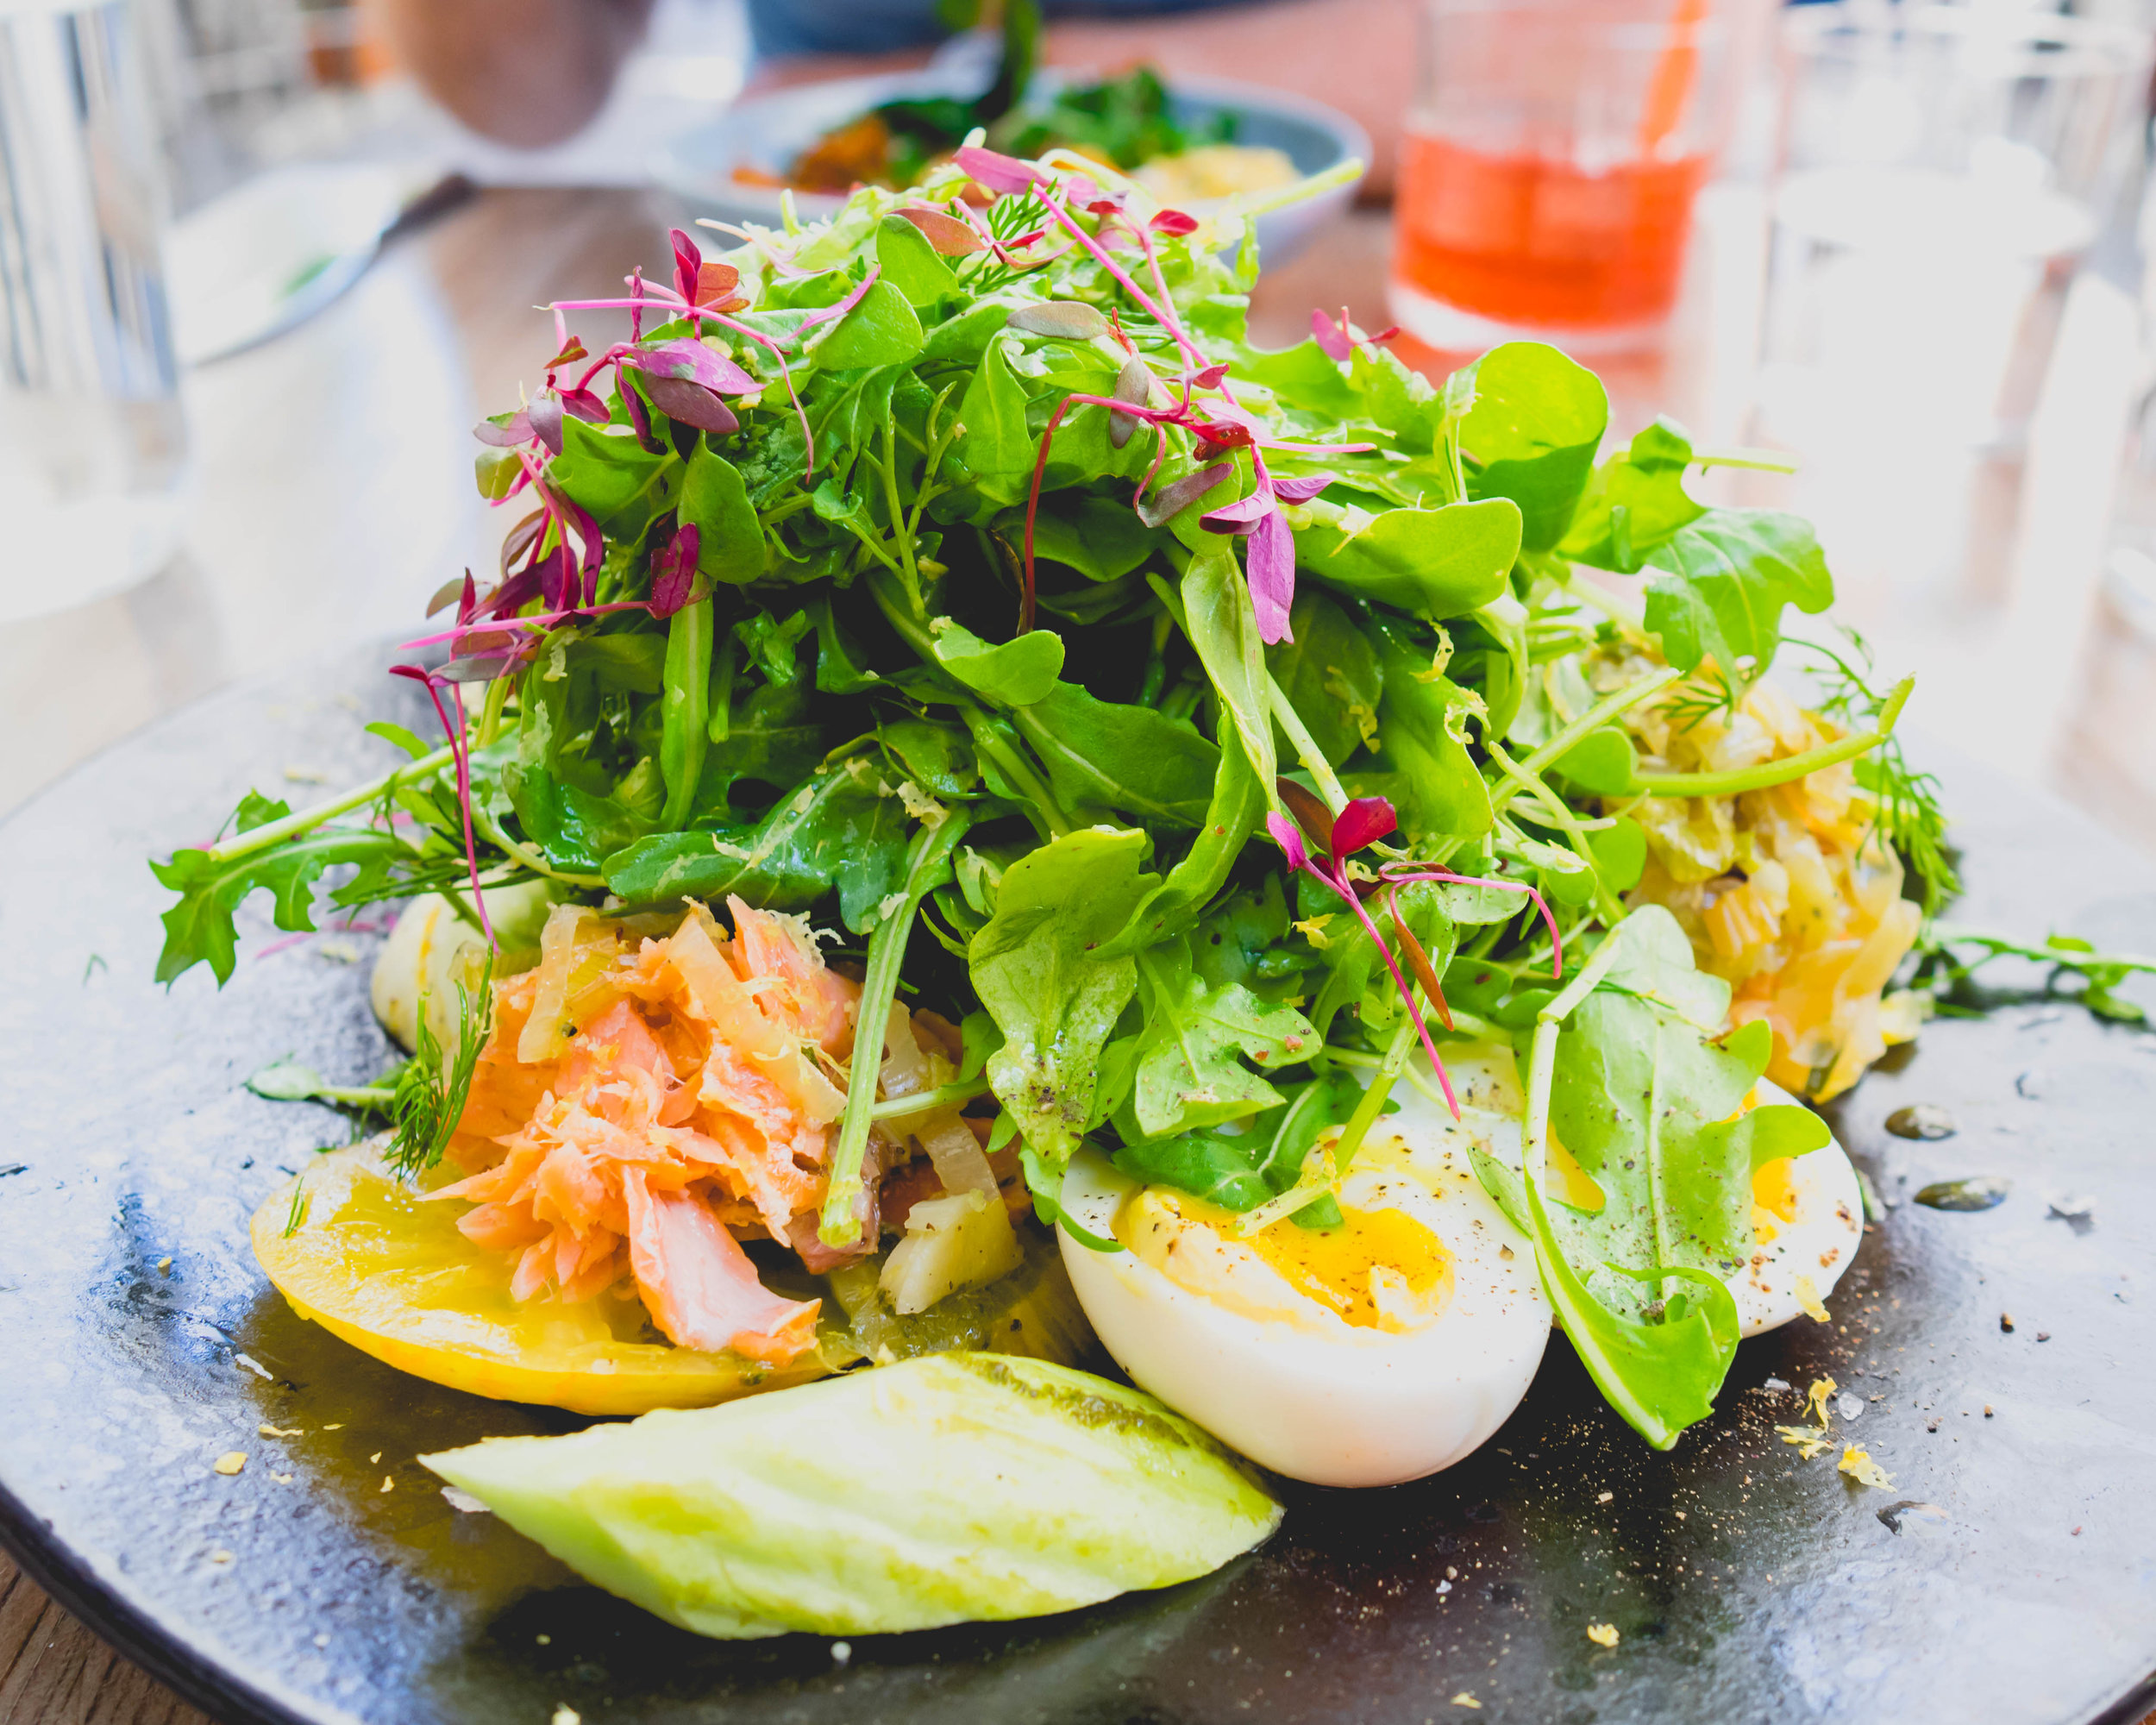 hot smoked king salmon : house smoked wild pacific salmon, heirloom tomatoes & cukes, melted alliums, arugula, herbs & a 6 minute farm egg.